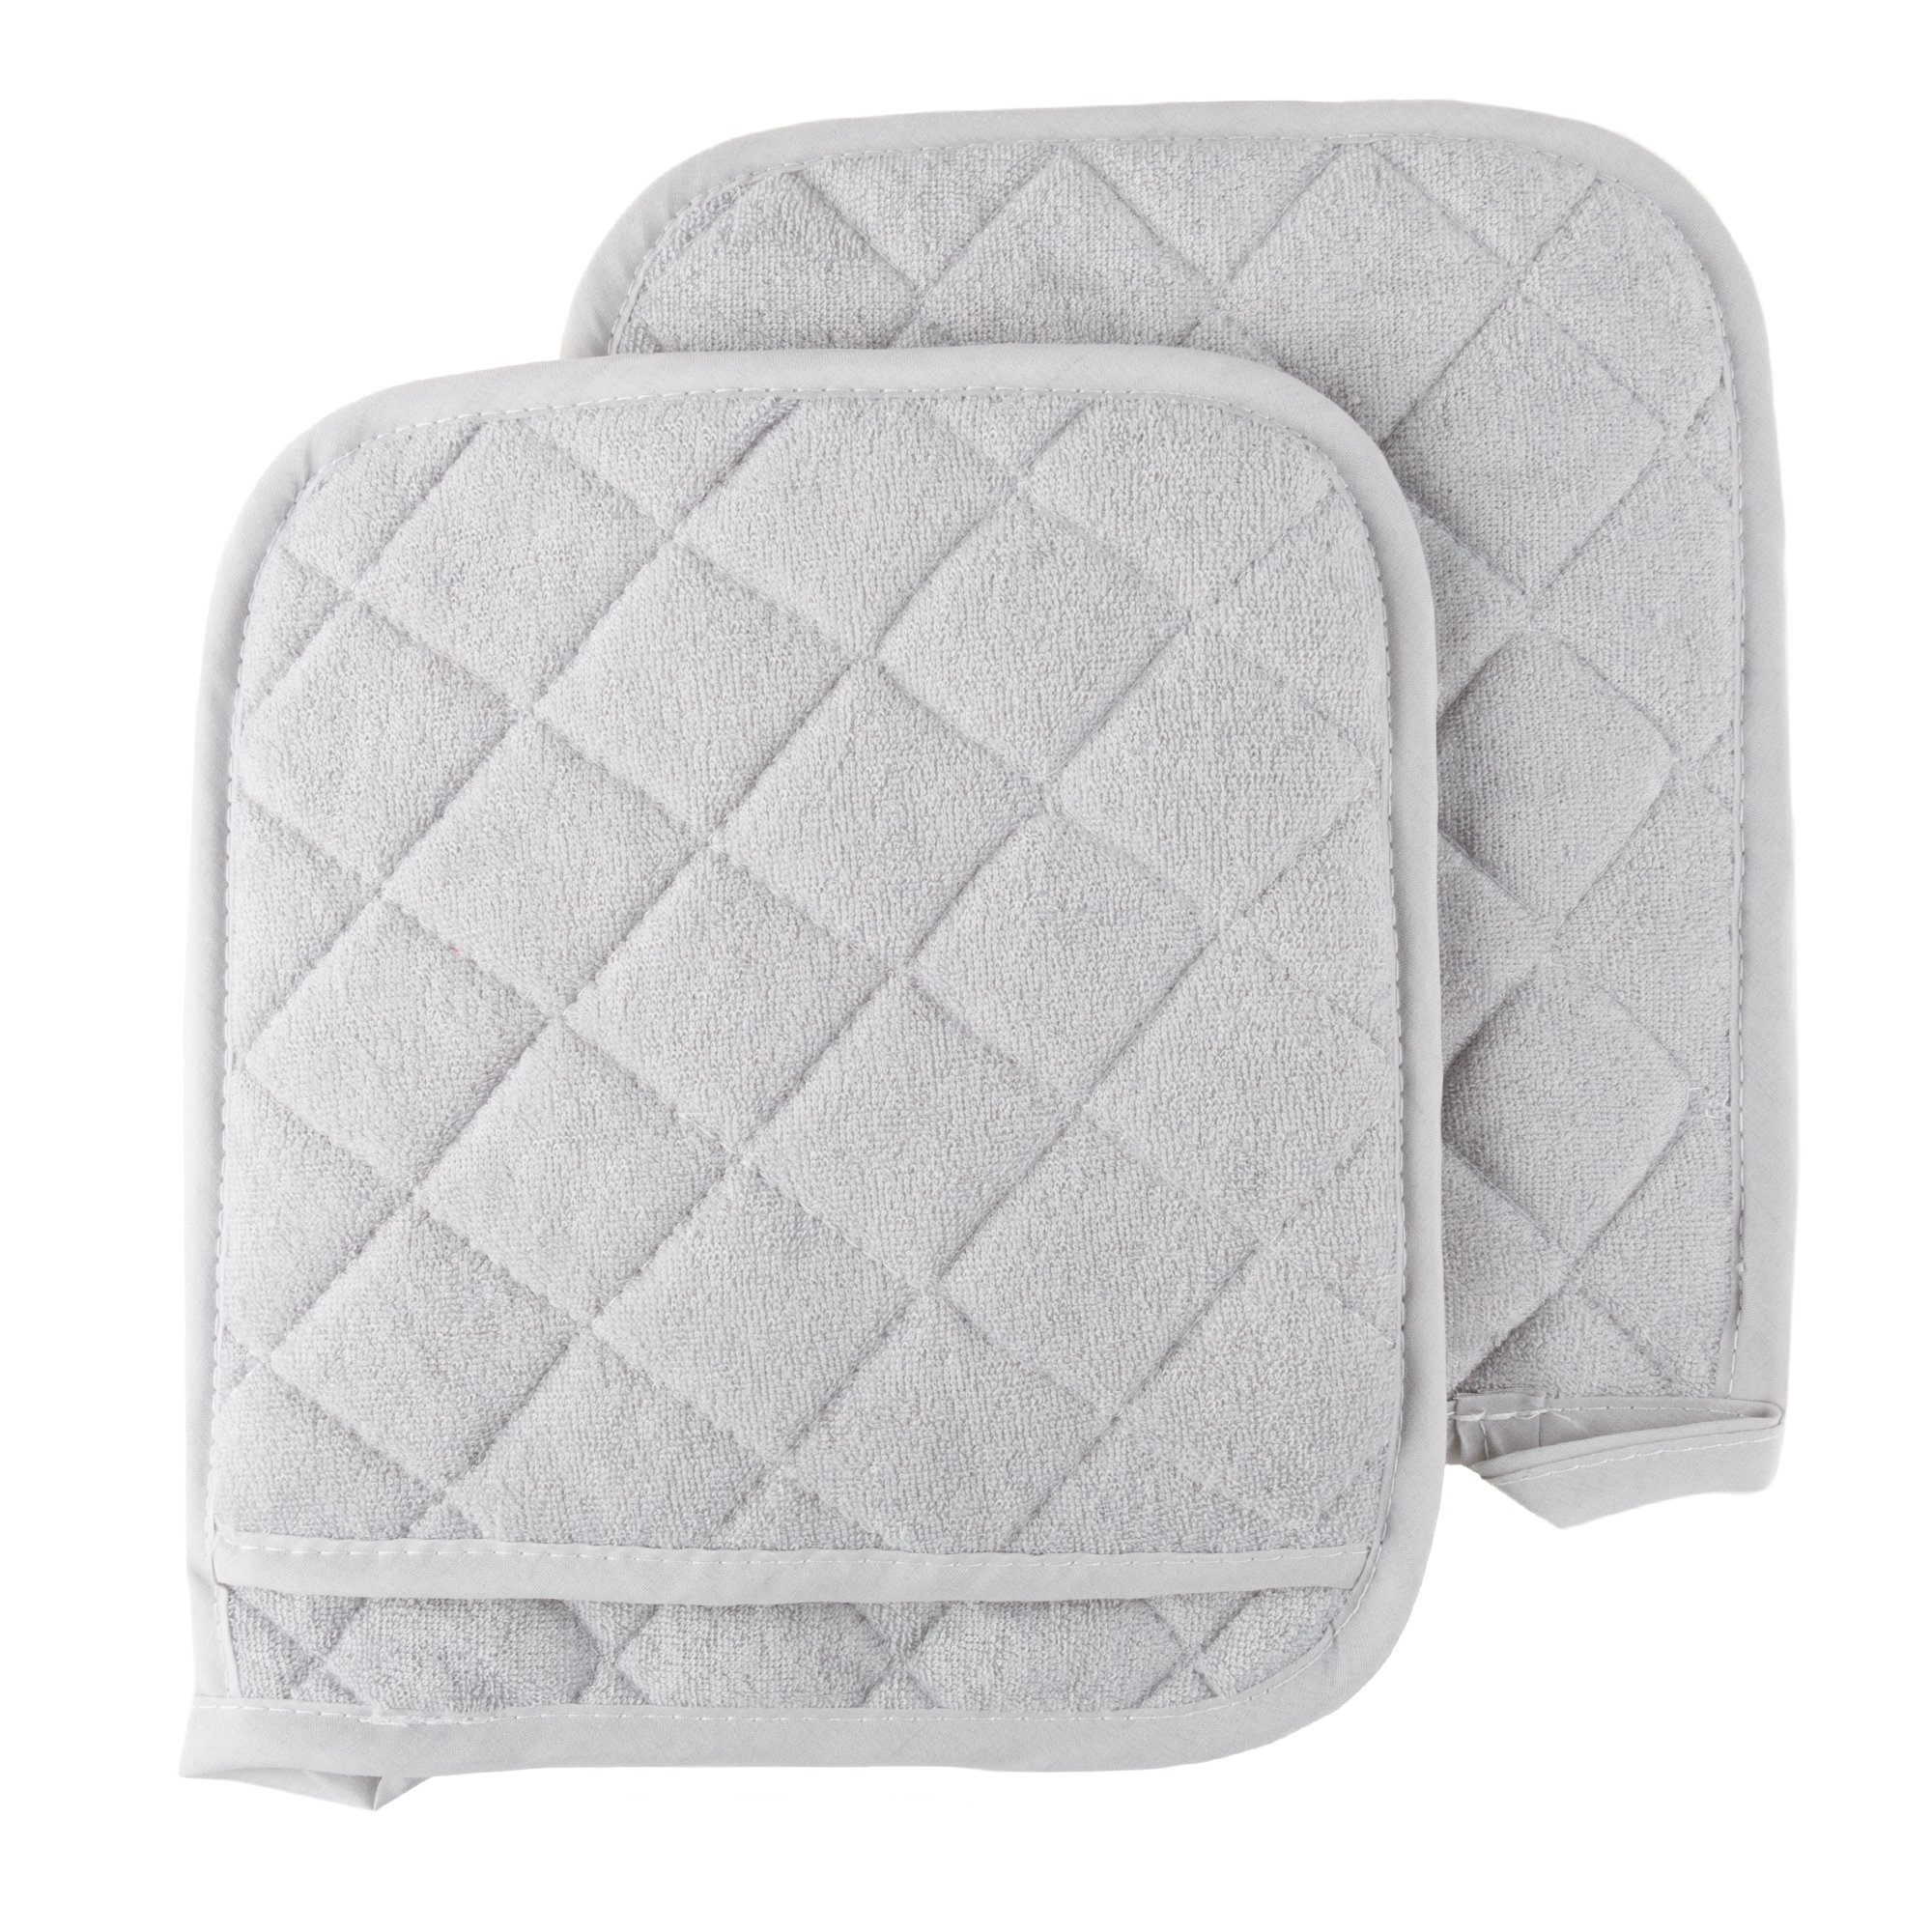 Pot Holder Set, 2 Piece Oversized Heat Resistant Quilted Cotton Pot Holders By Lavish Home (Silver) by Lavish Home